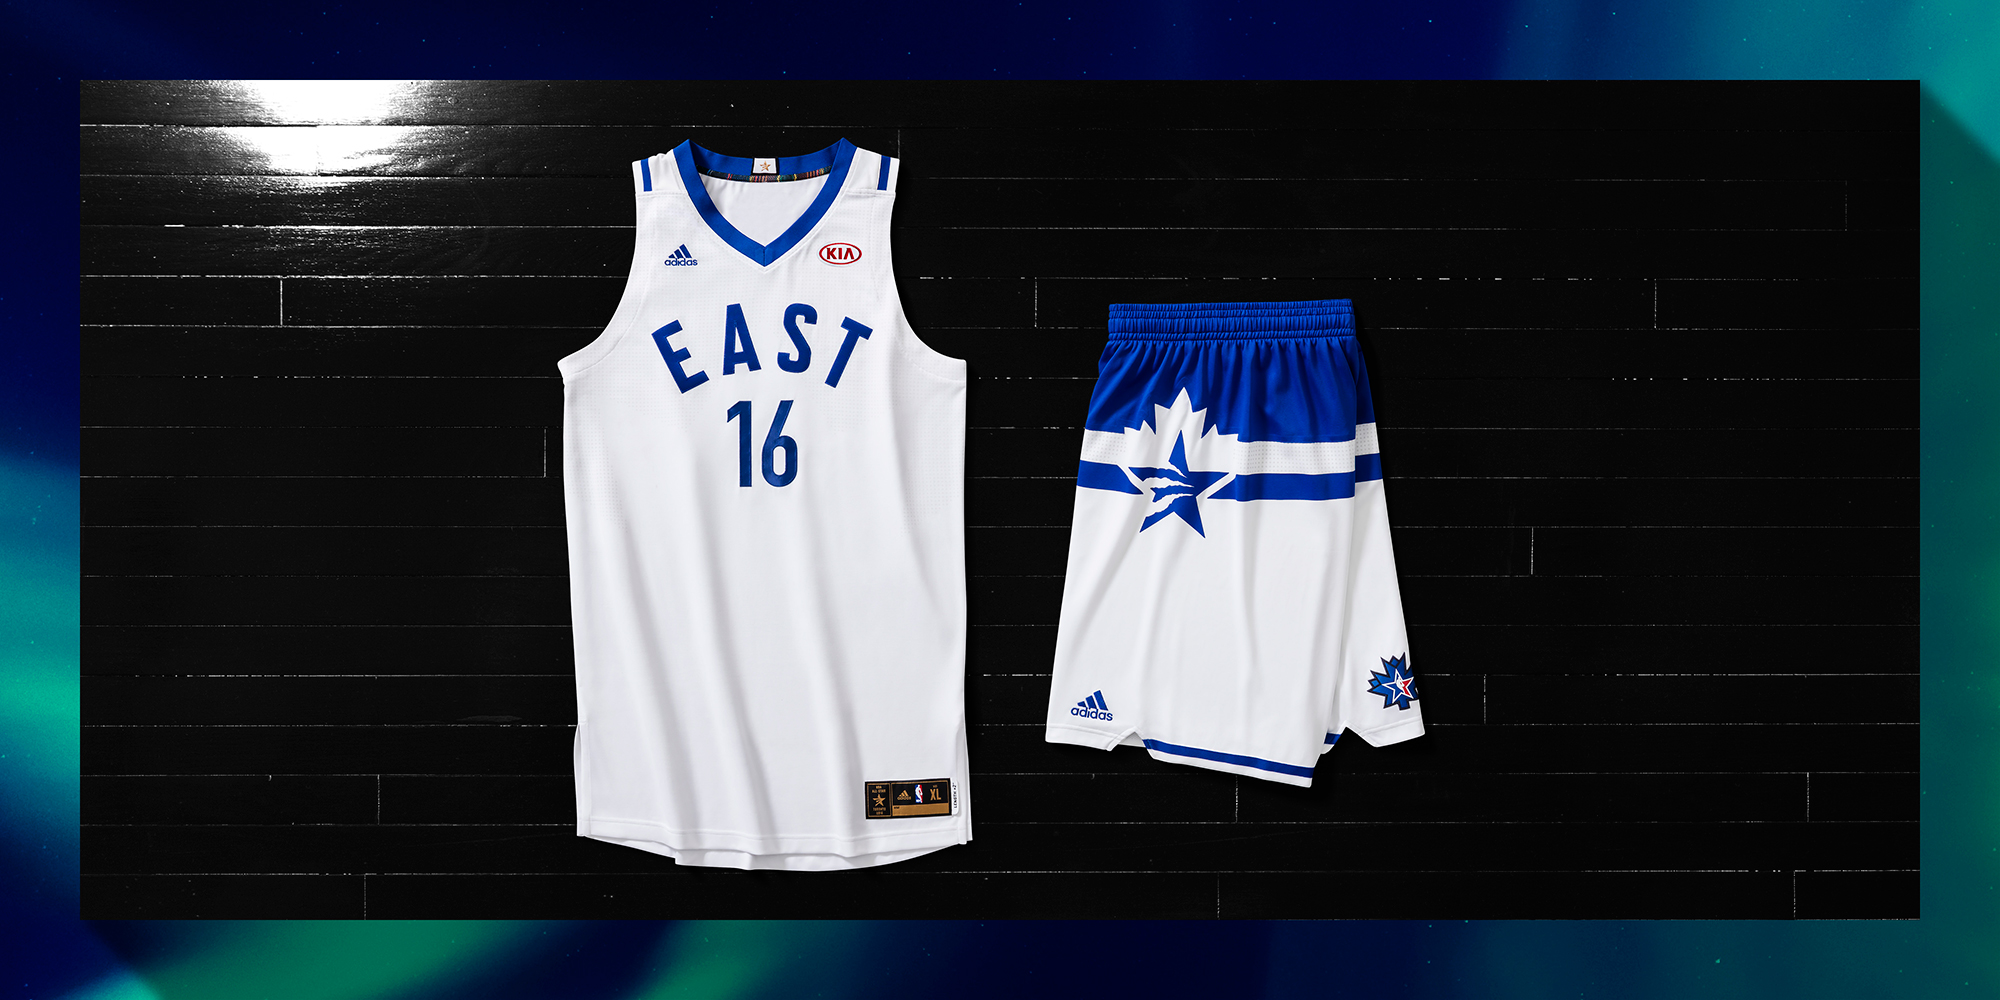 087f7a28b LOOK  Here s how the 2016 NBA All-Star Weekend gear will look like ...